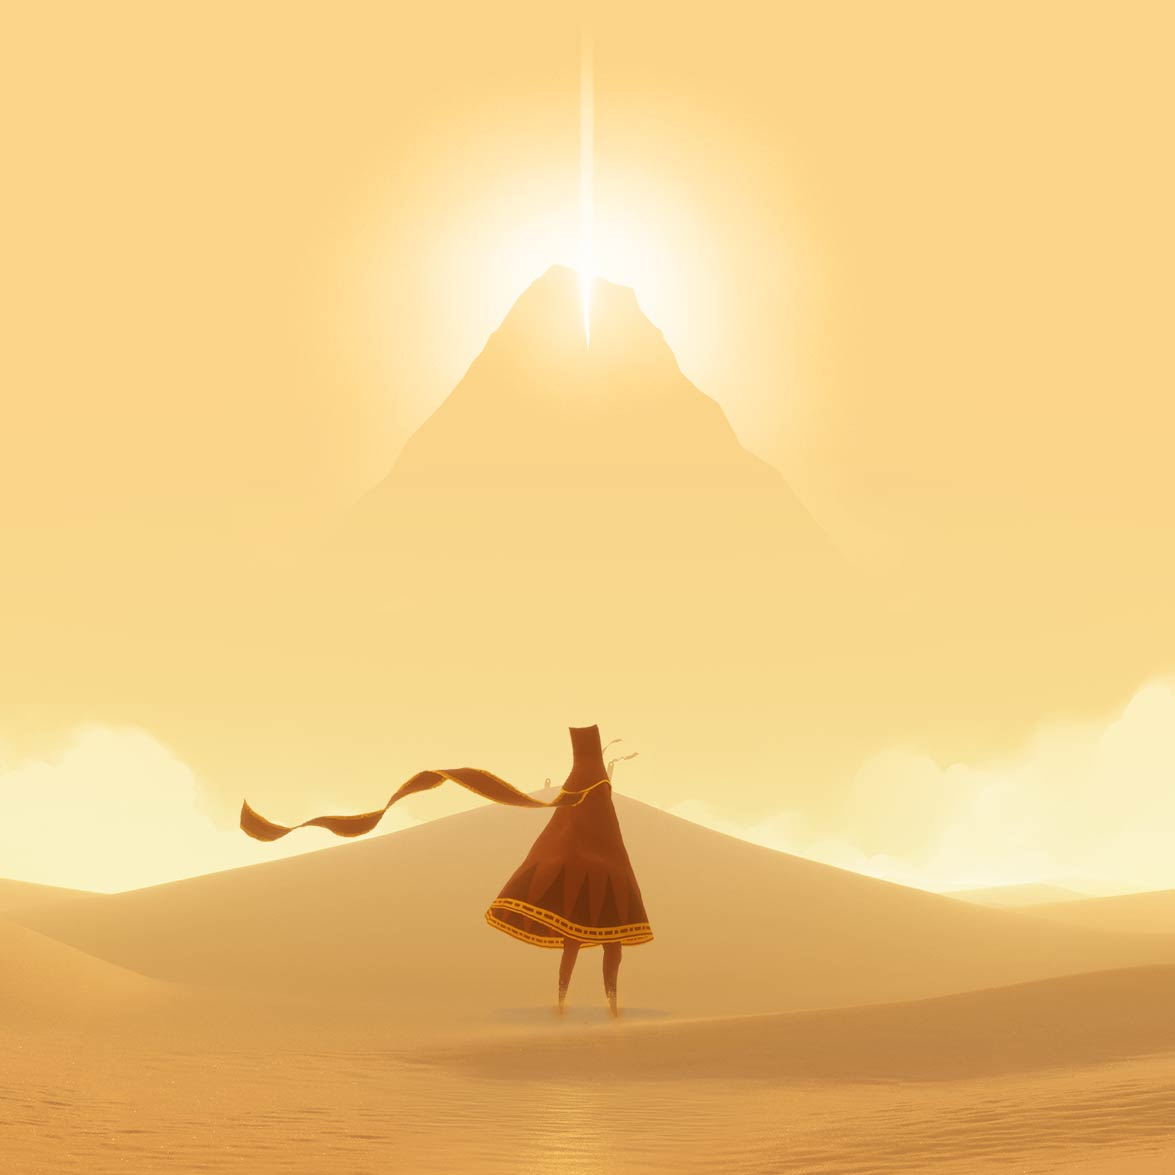 Journey banner backdrop